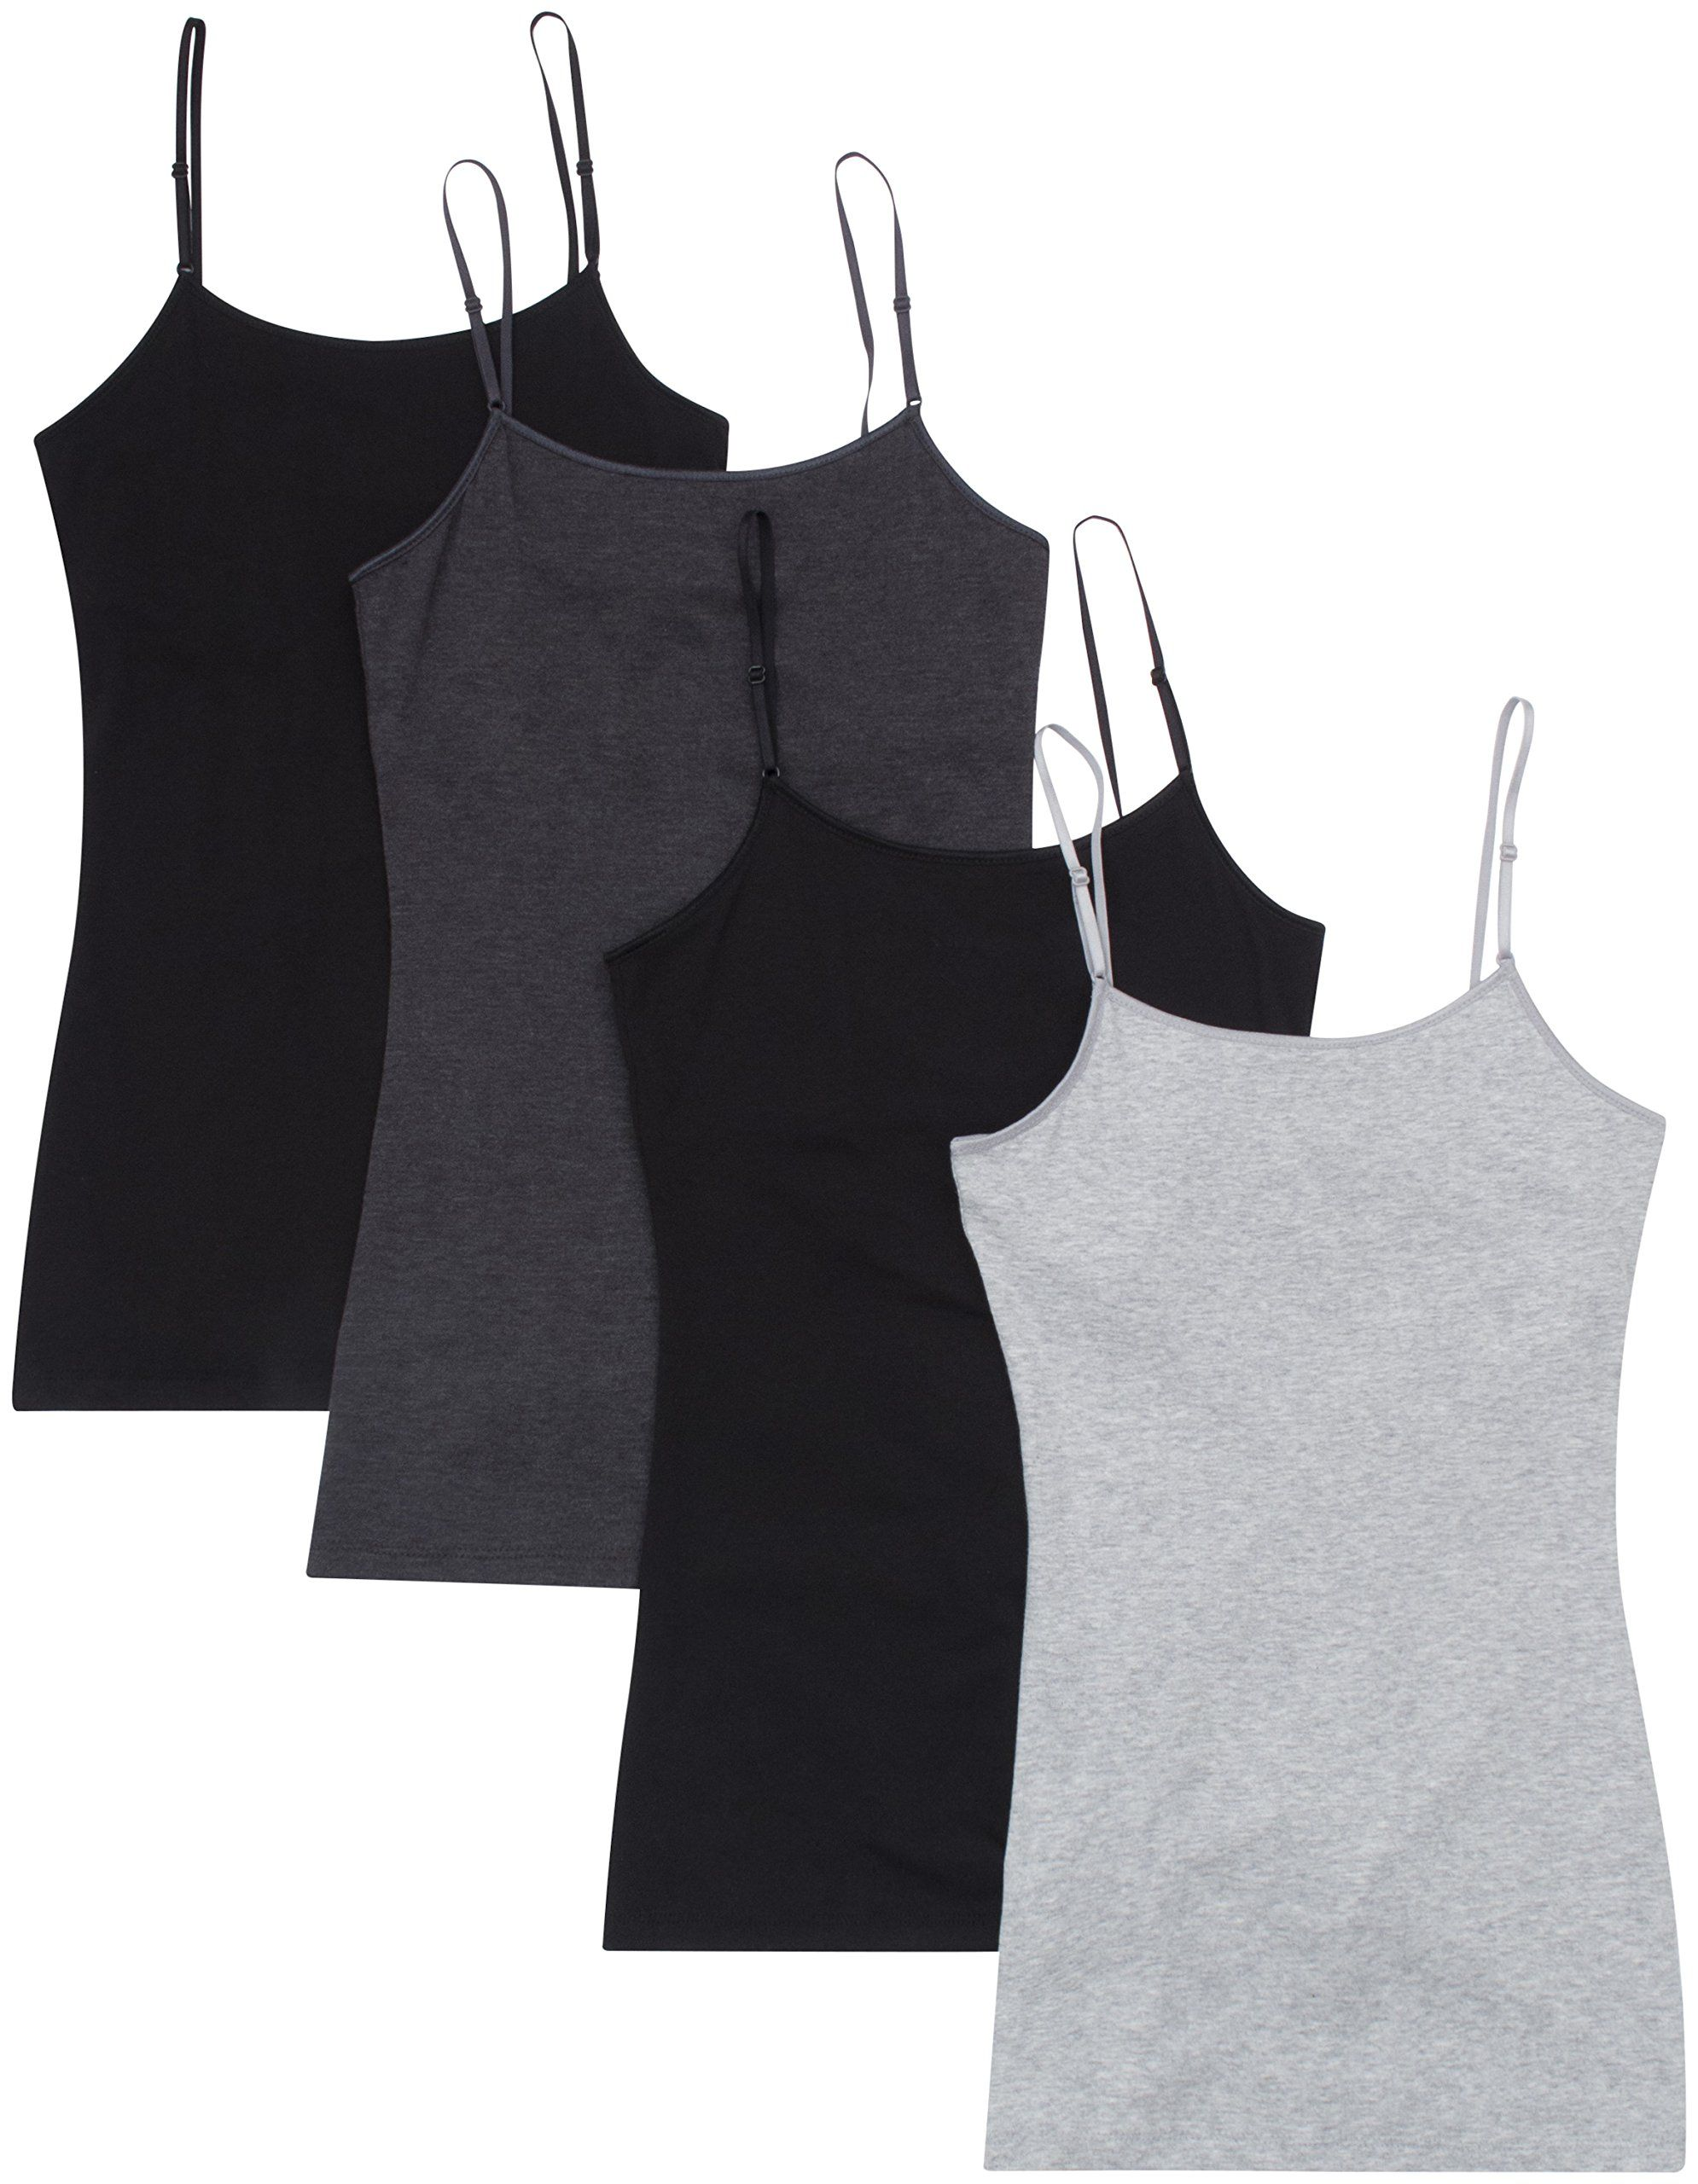 Cami tops Gray built in bra adjustable straps Choice size New Juniors Ladies